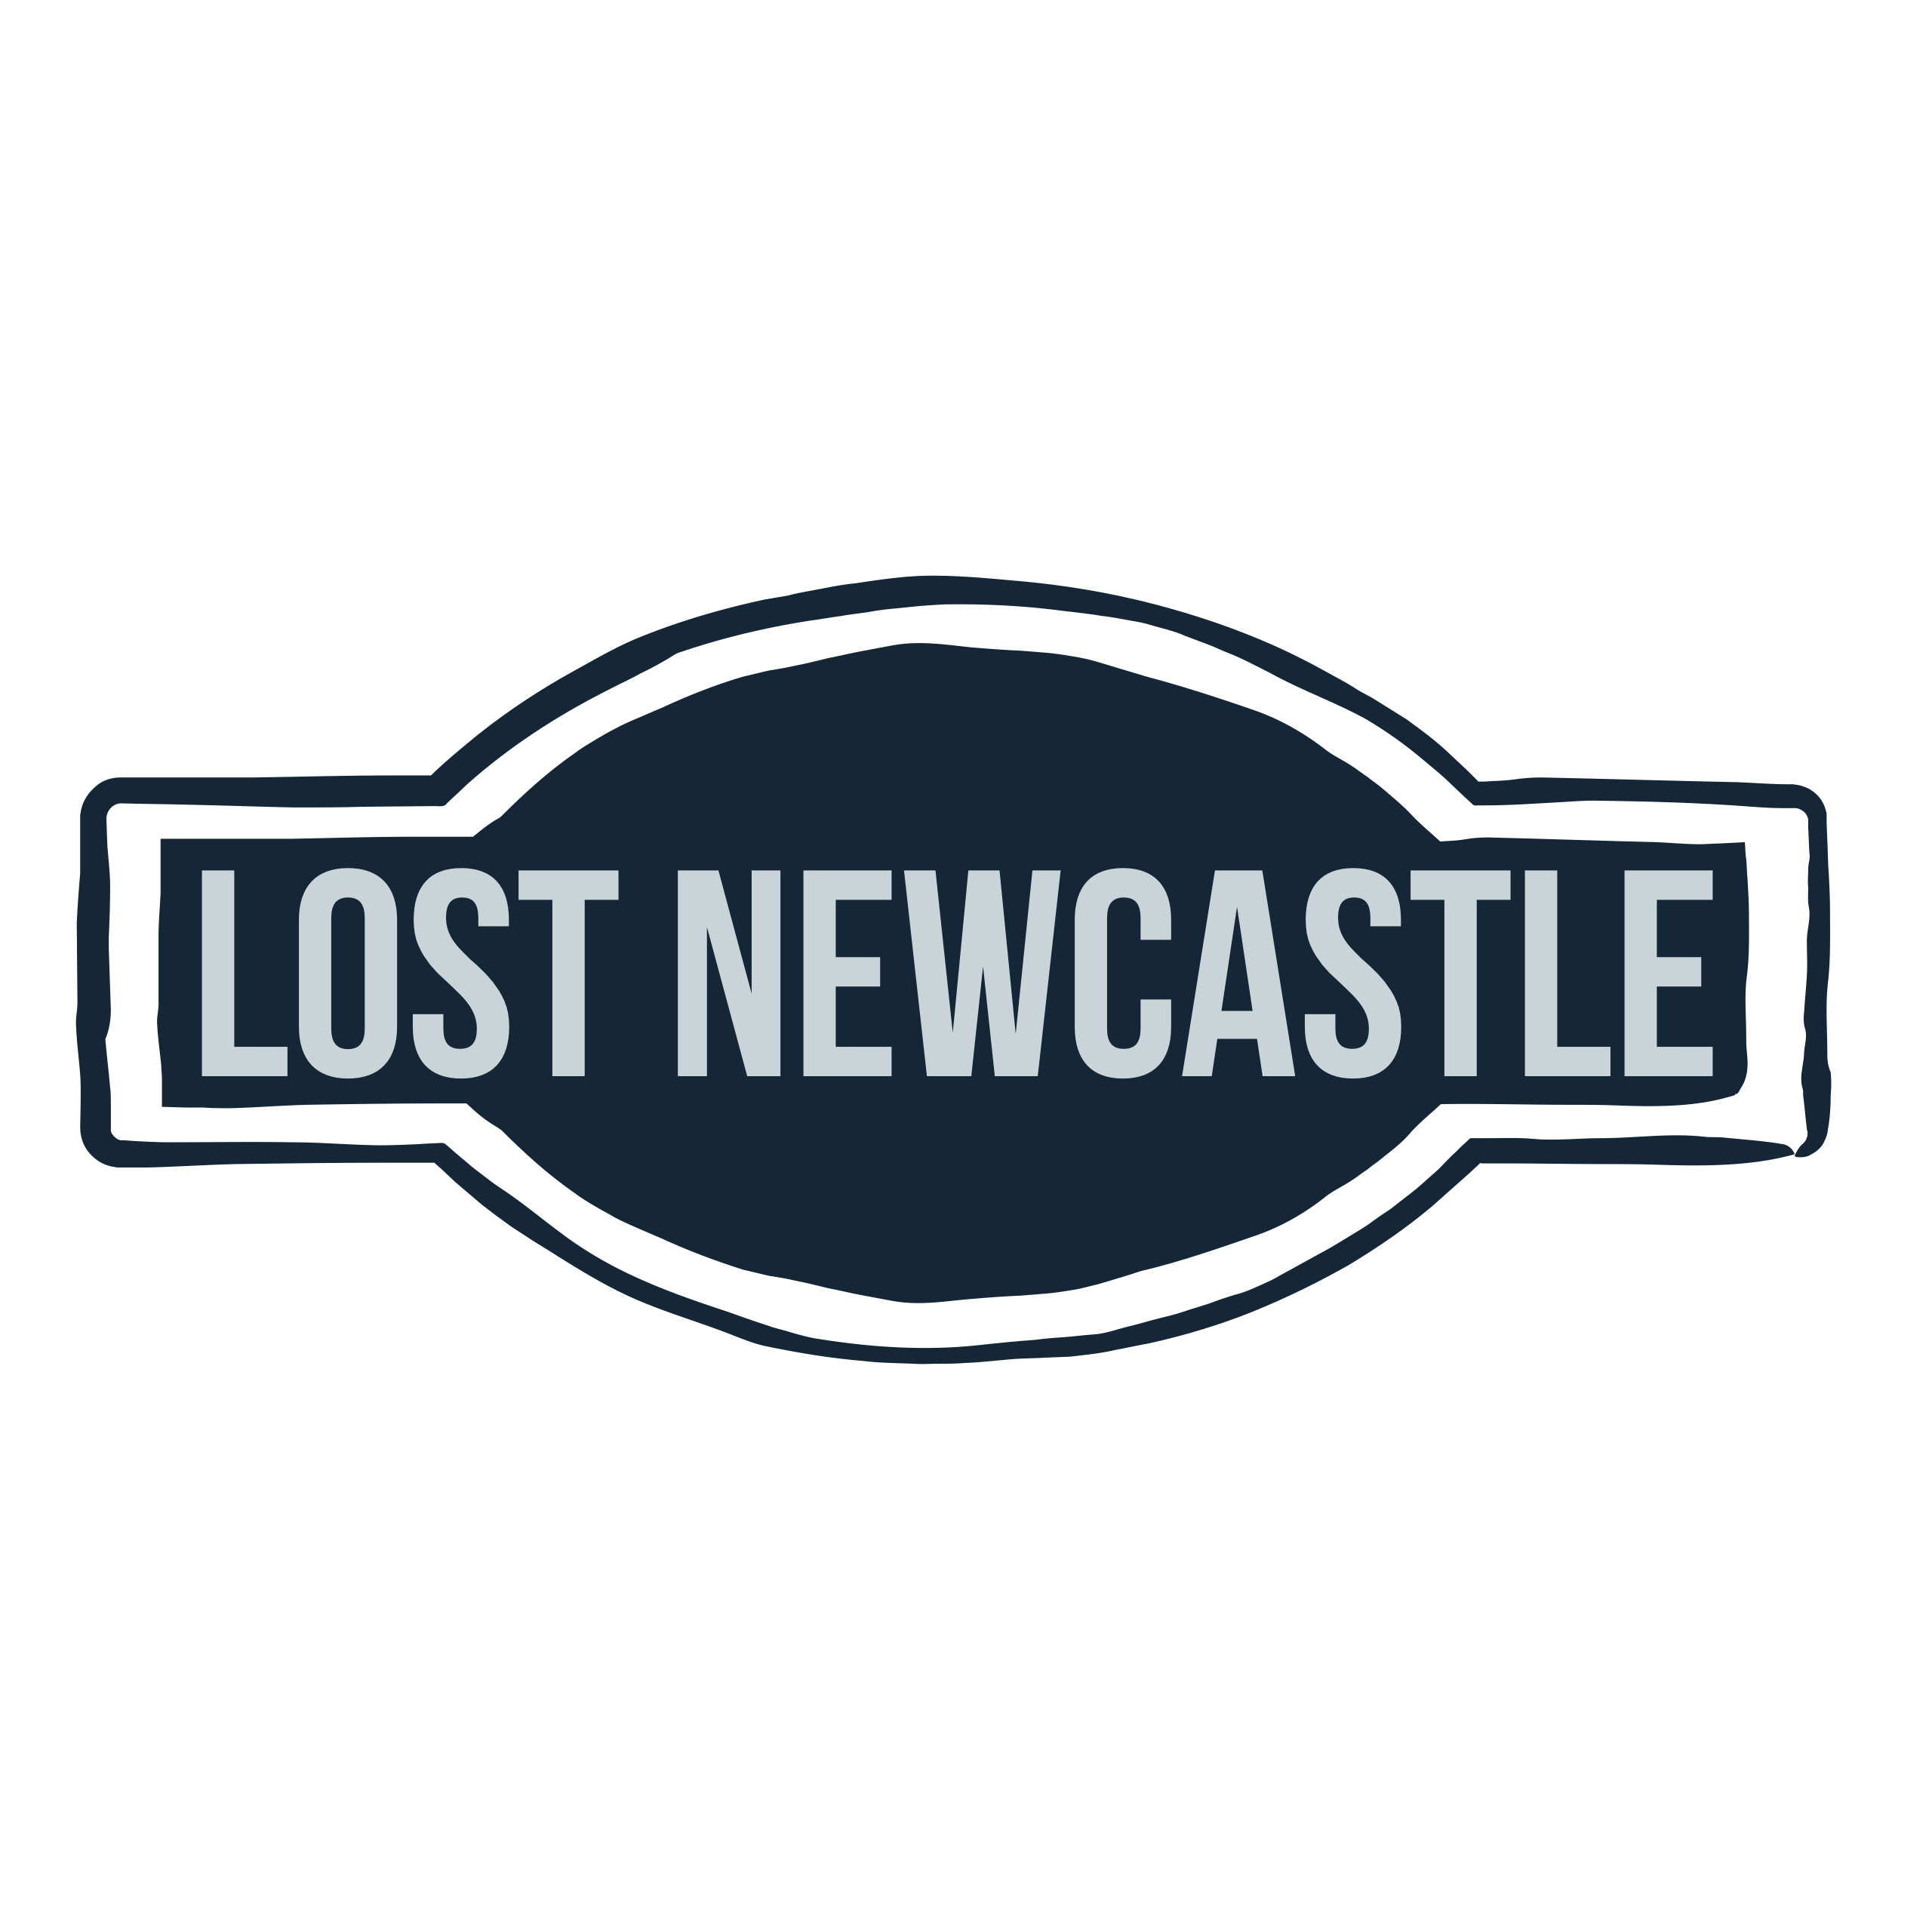 Lost Newcastle